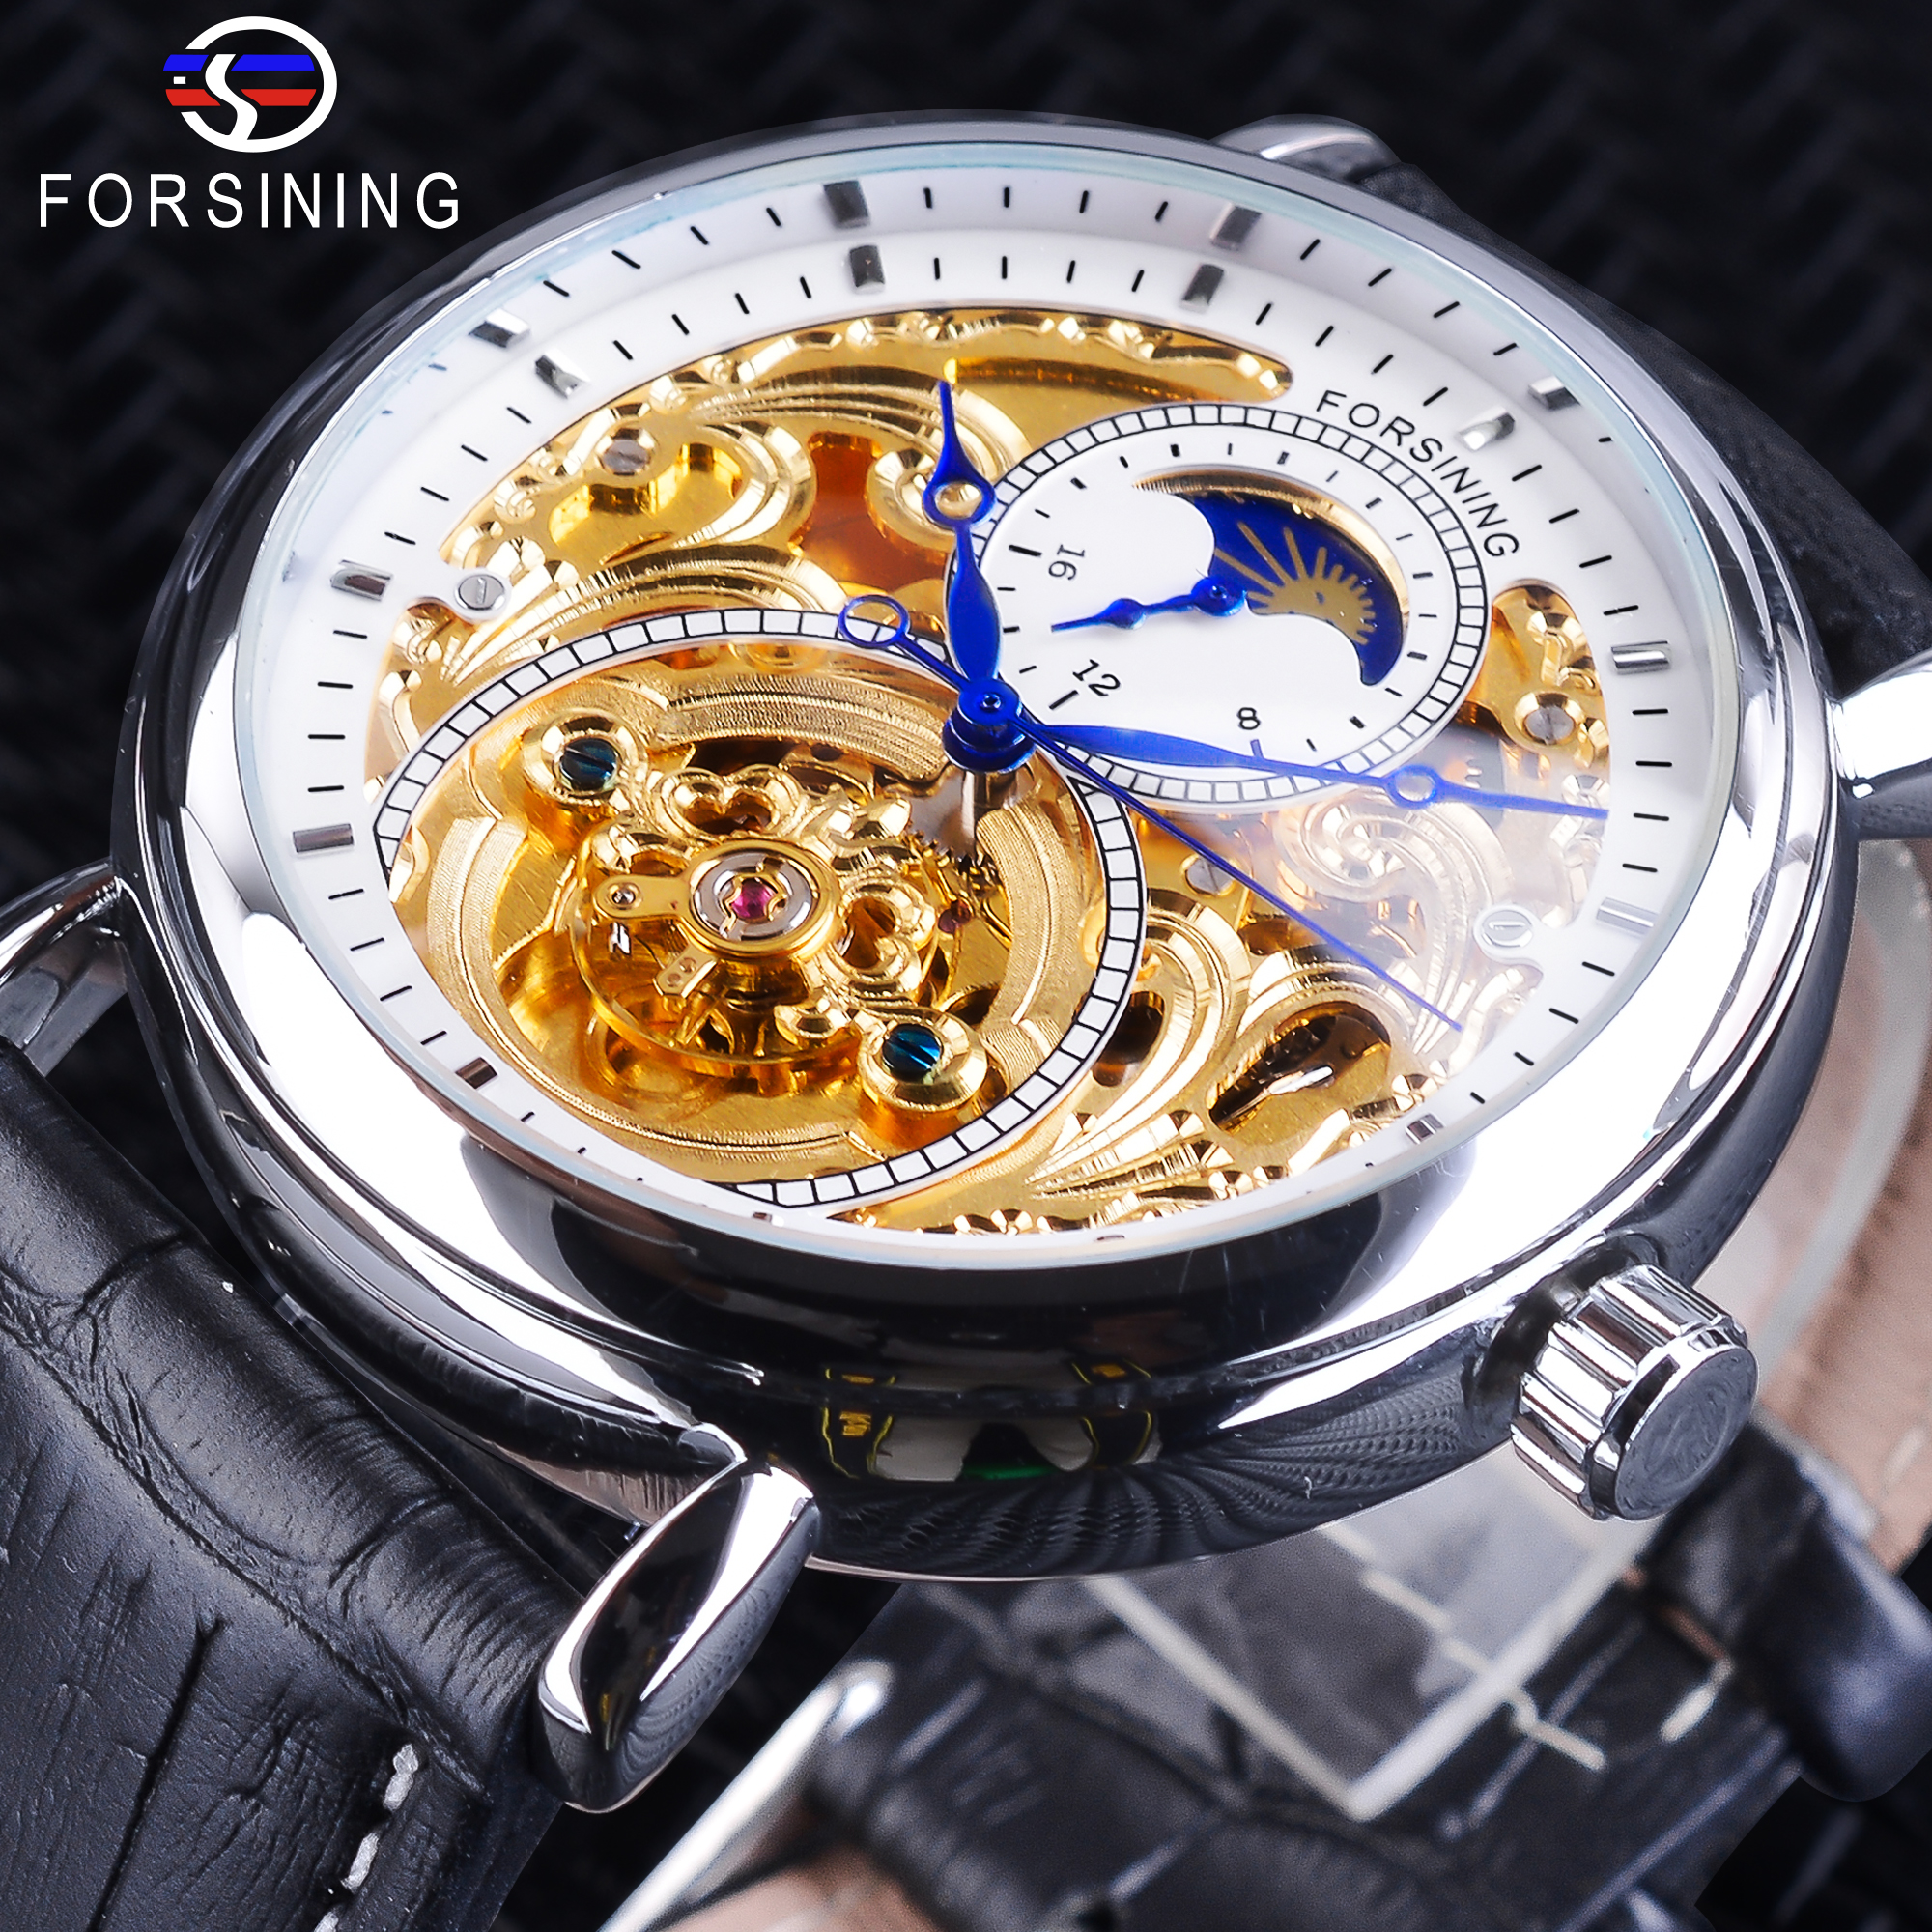 Forsining White Golden Skeleton Watches Fashion Blue Hands Men's Automatic Watches Top Brand Luxury Black Genuine Leather Band forsining design fashion hollow out watches skeleton automatic wristwatch top luxury brand genuine leather band mechanical clock